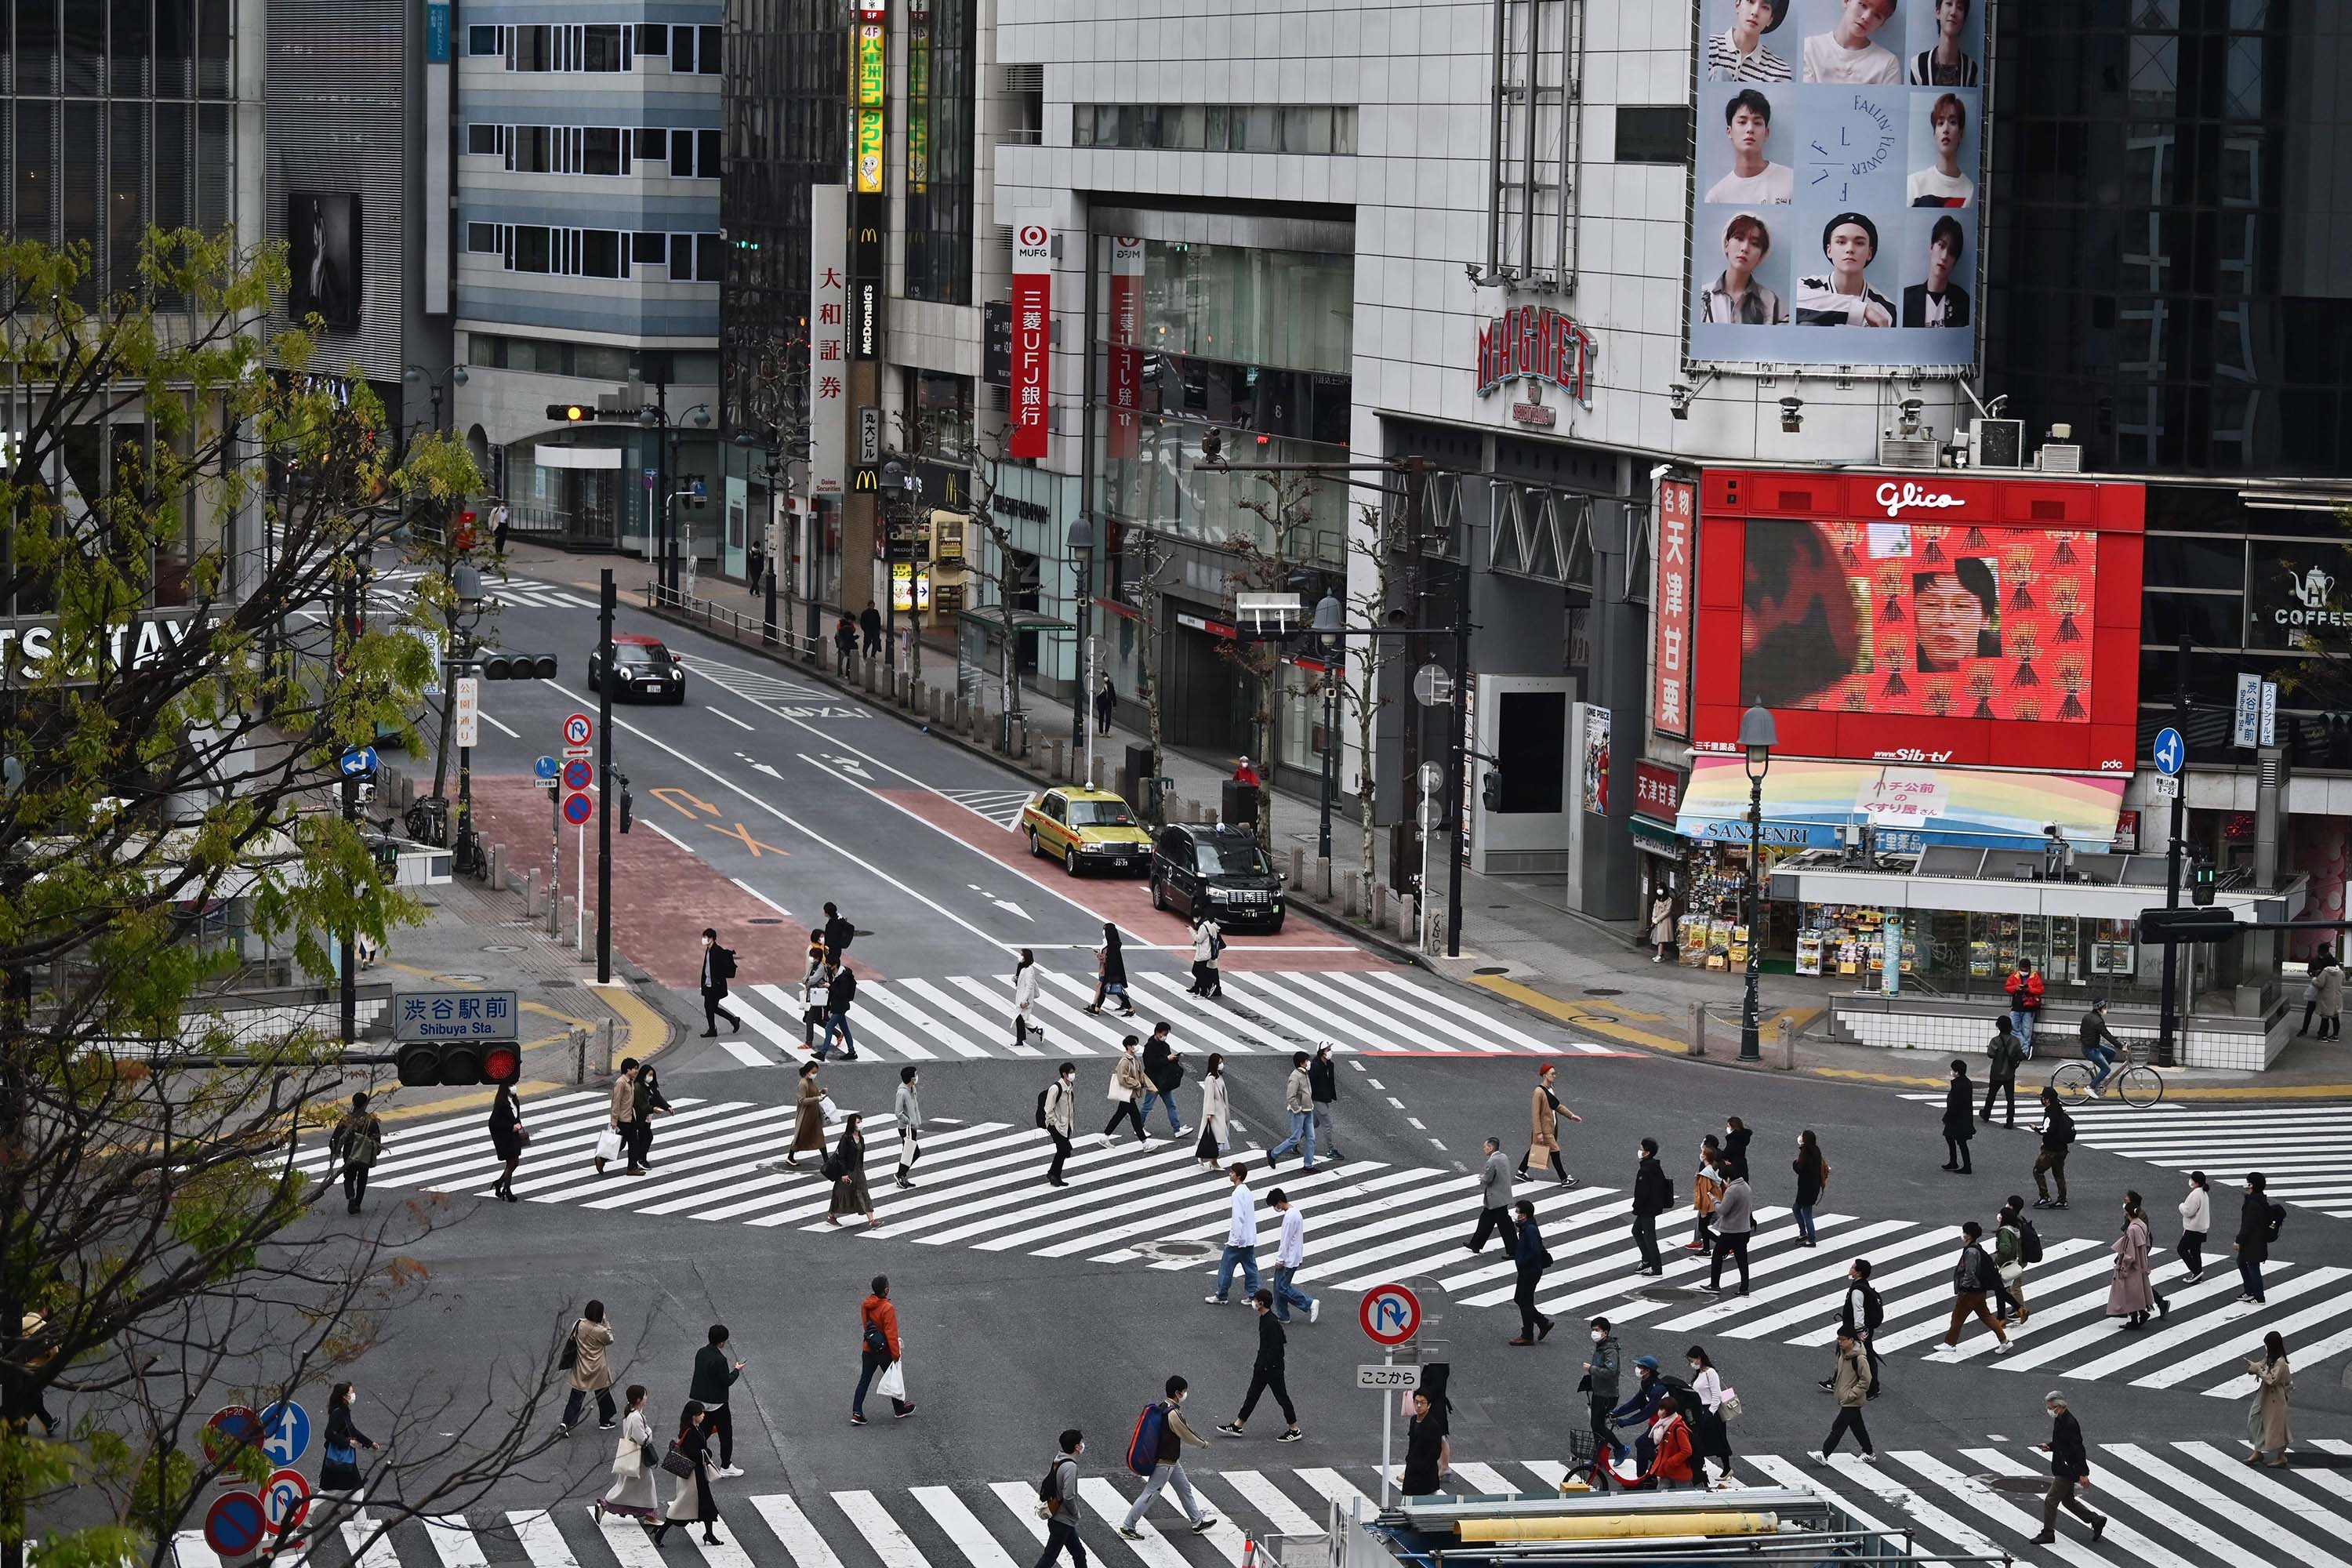 The global economy just got a $1 trillion infusion from Japan